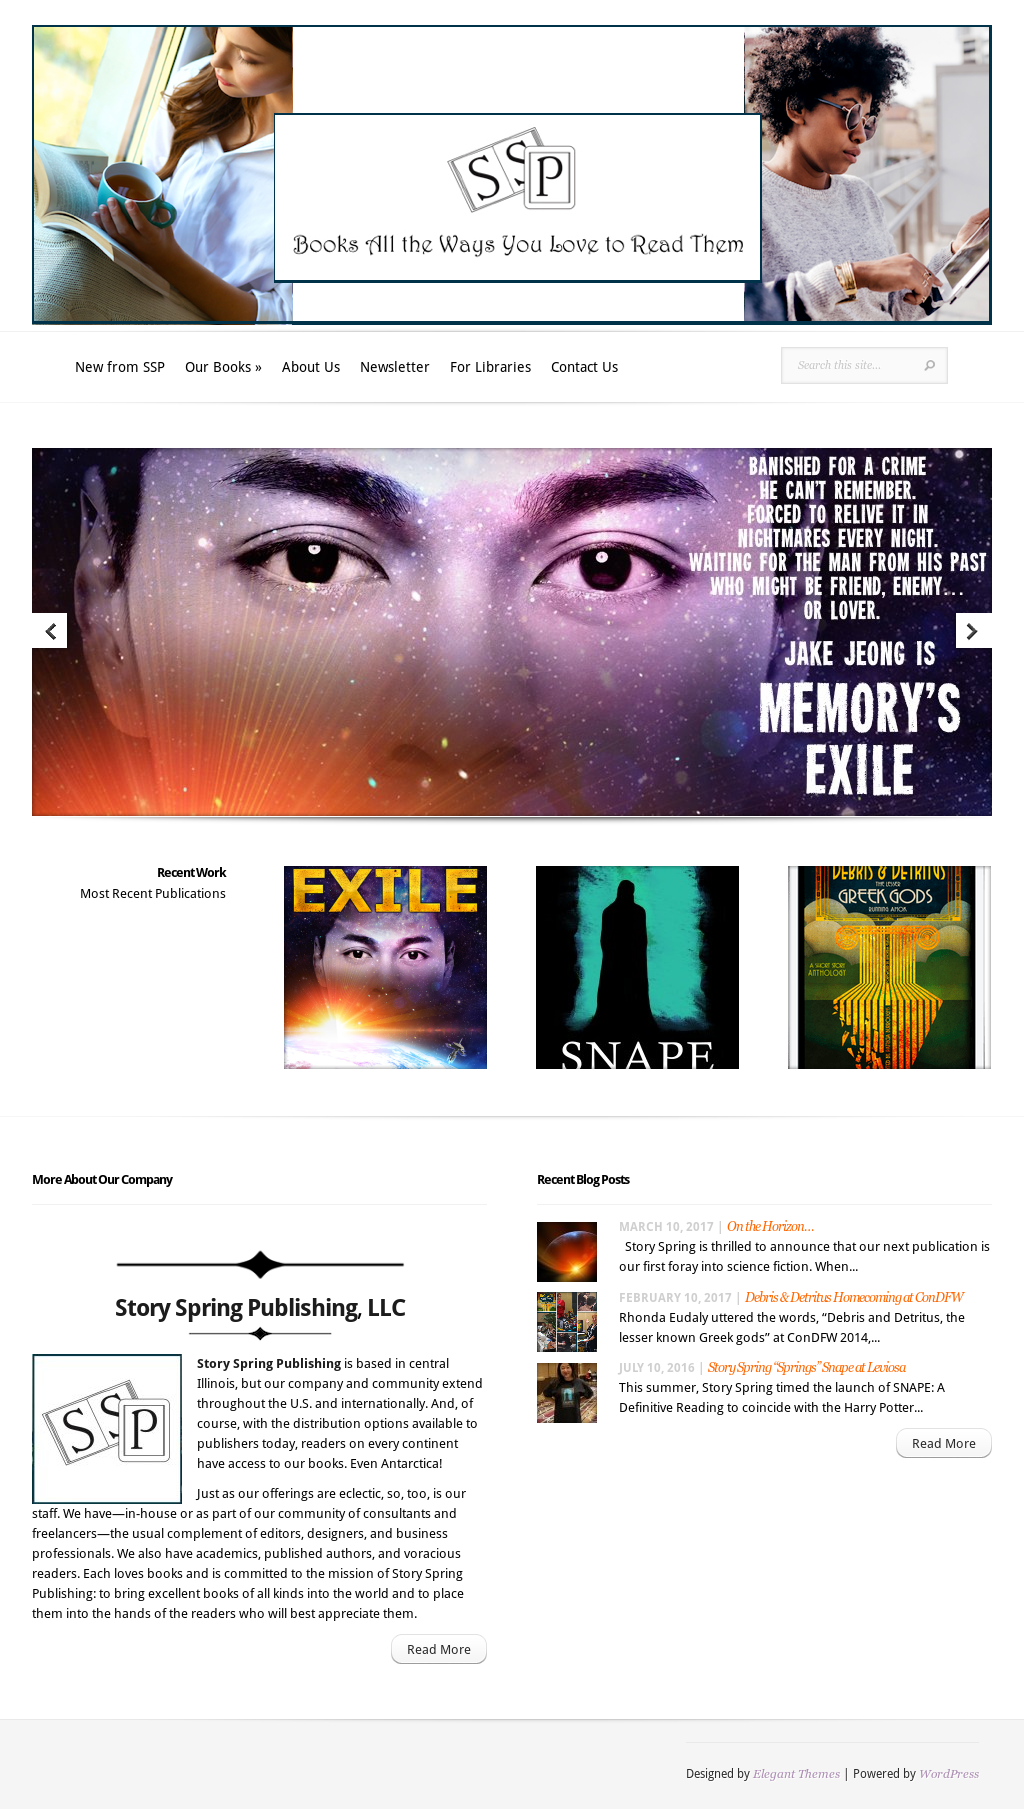 Story Spring Publishing Competitors, Revenue and Employees